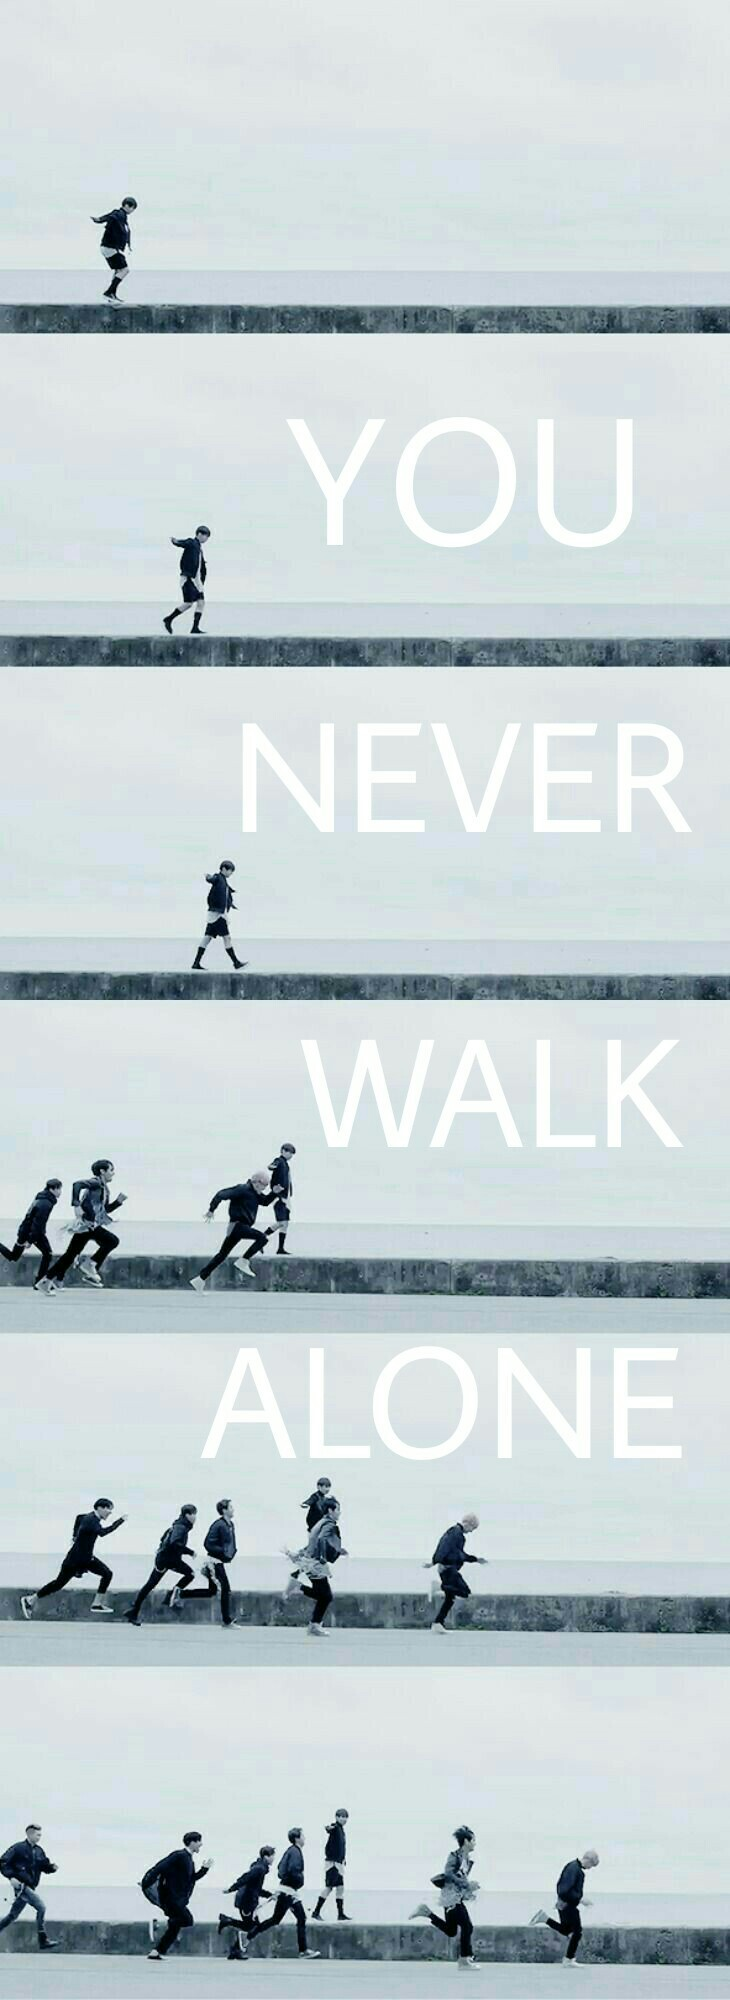 YOU NEVER WALK ALONE  BTS BTS Pinterest BTS Bts 730x2000